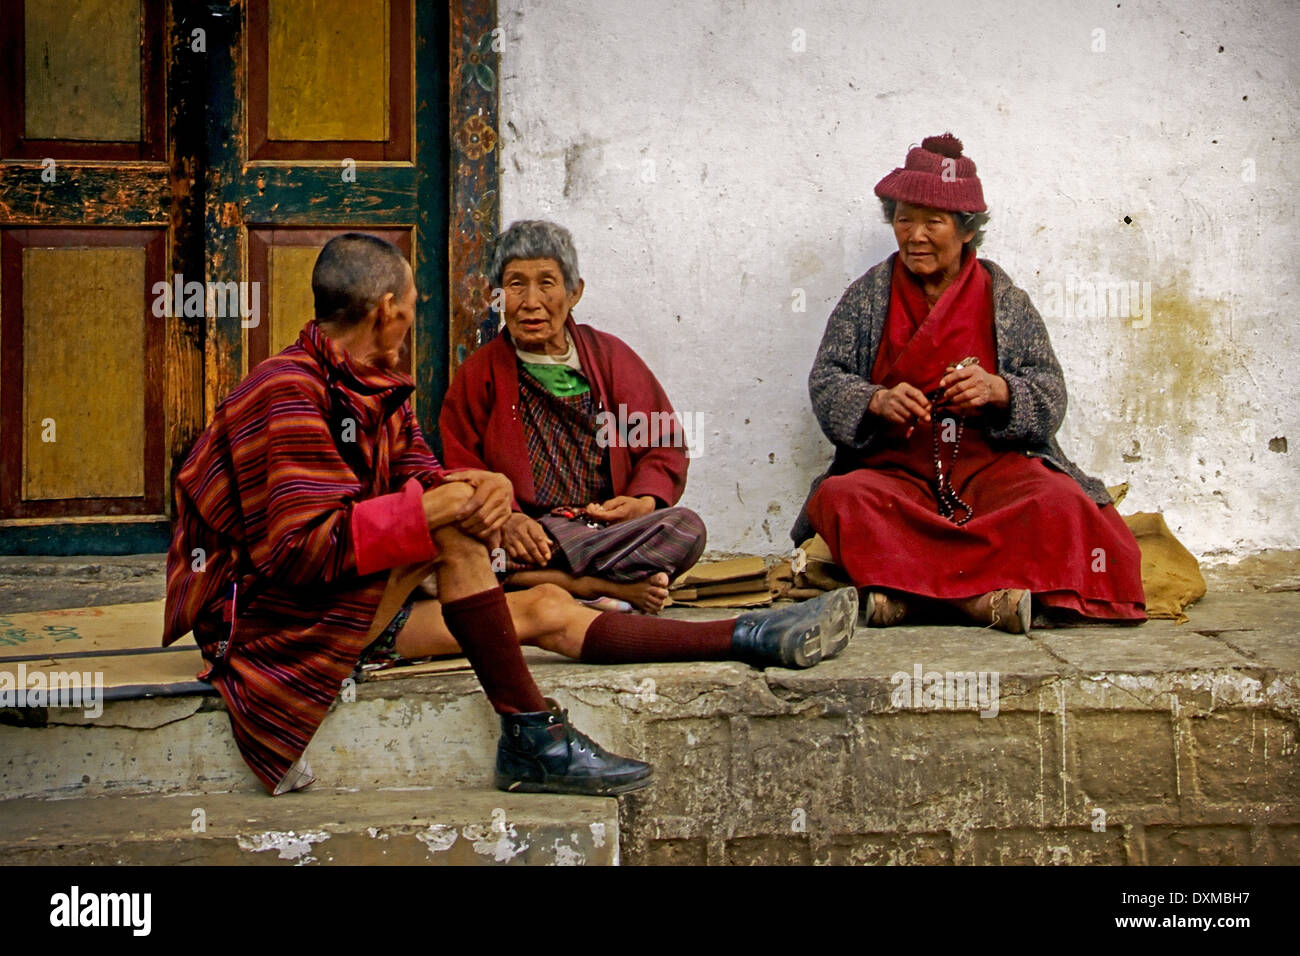 Bhutanese people in traditional costume in conversation in Thimpu, Bhutan. Digitally Manipulated Image. - Stock Image